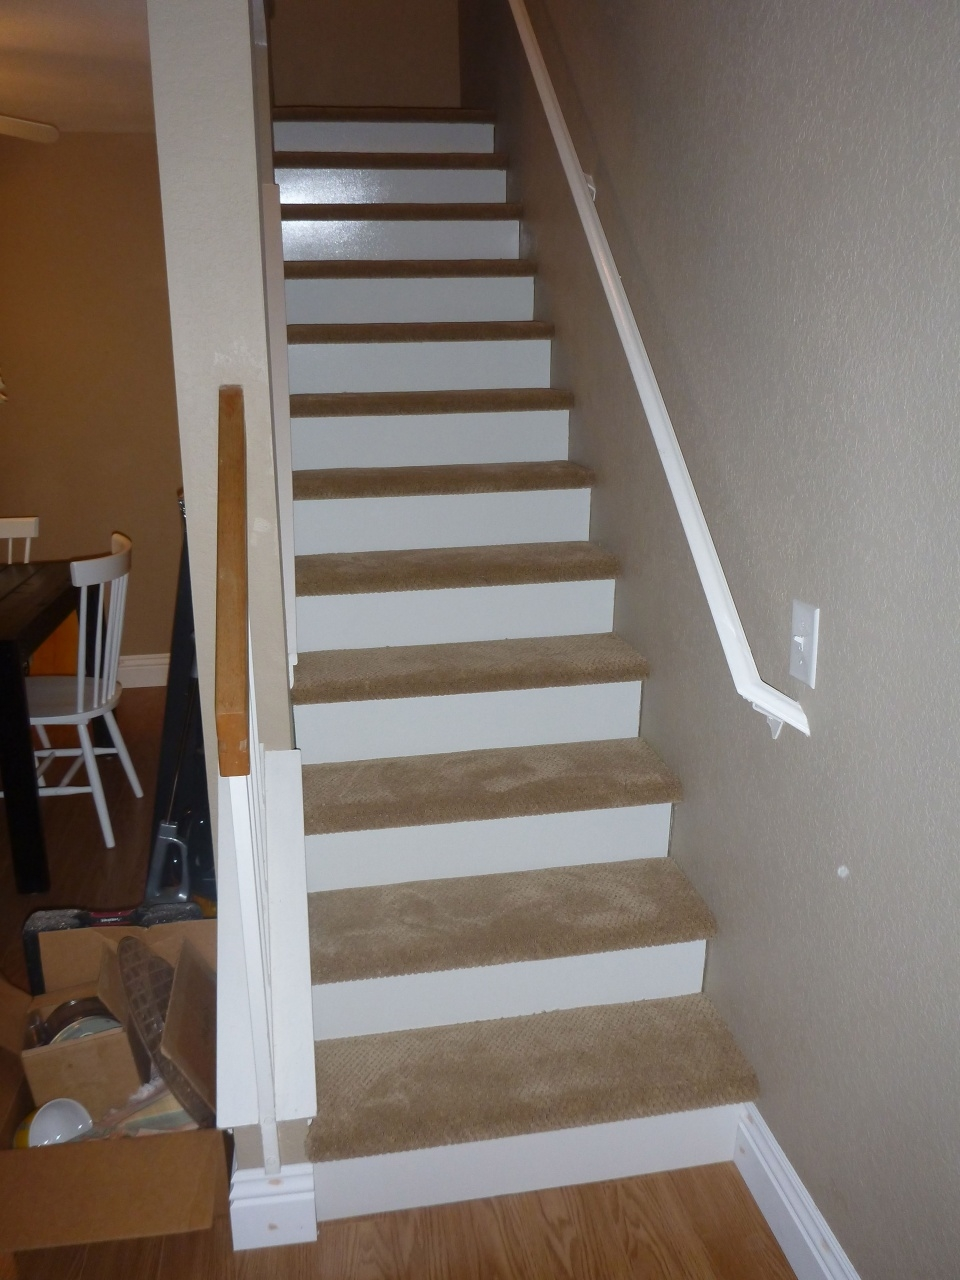 Vinyl Stairs Treads And Risers Our New Stairs 1 8 Inch Wood White | White Oak Stair Risers | Spindles | Paint | Stair Railing | Stairs Treads | Carpet